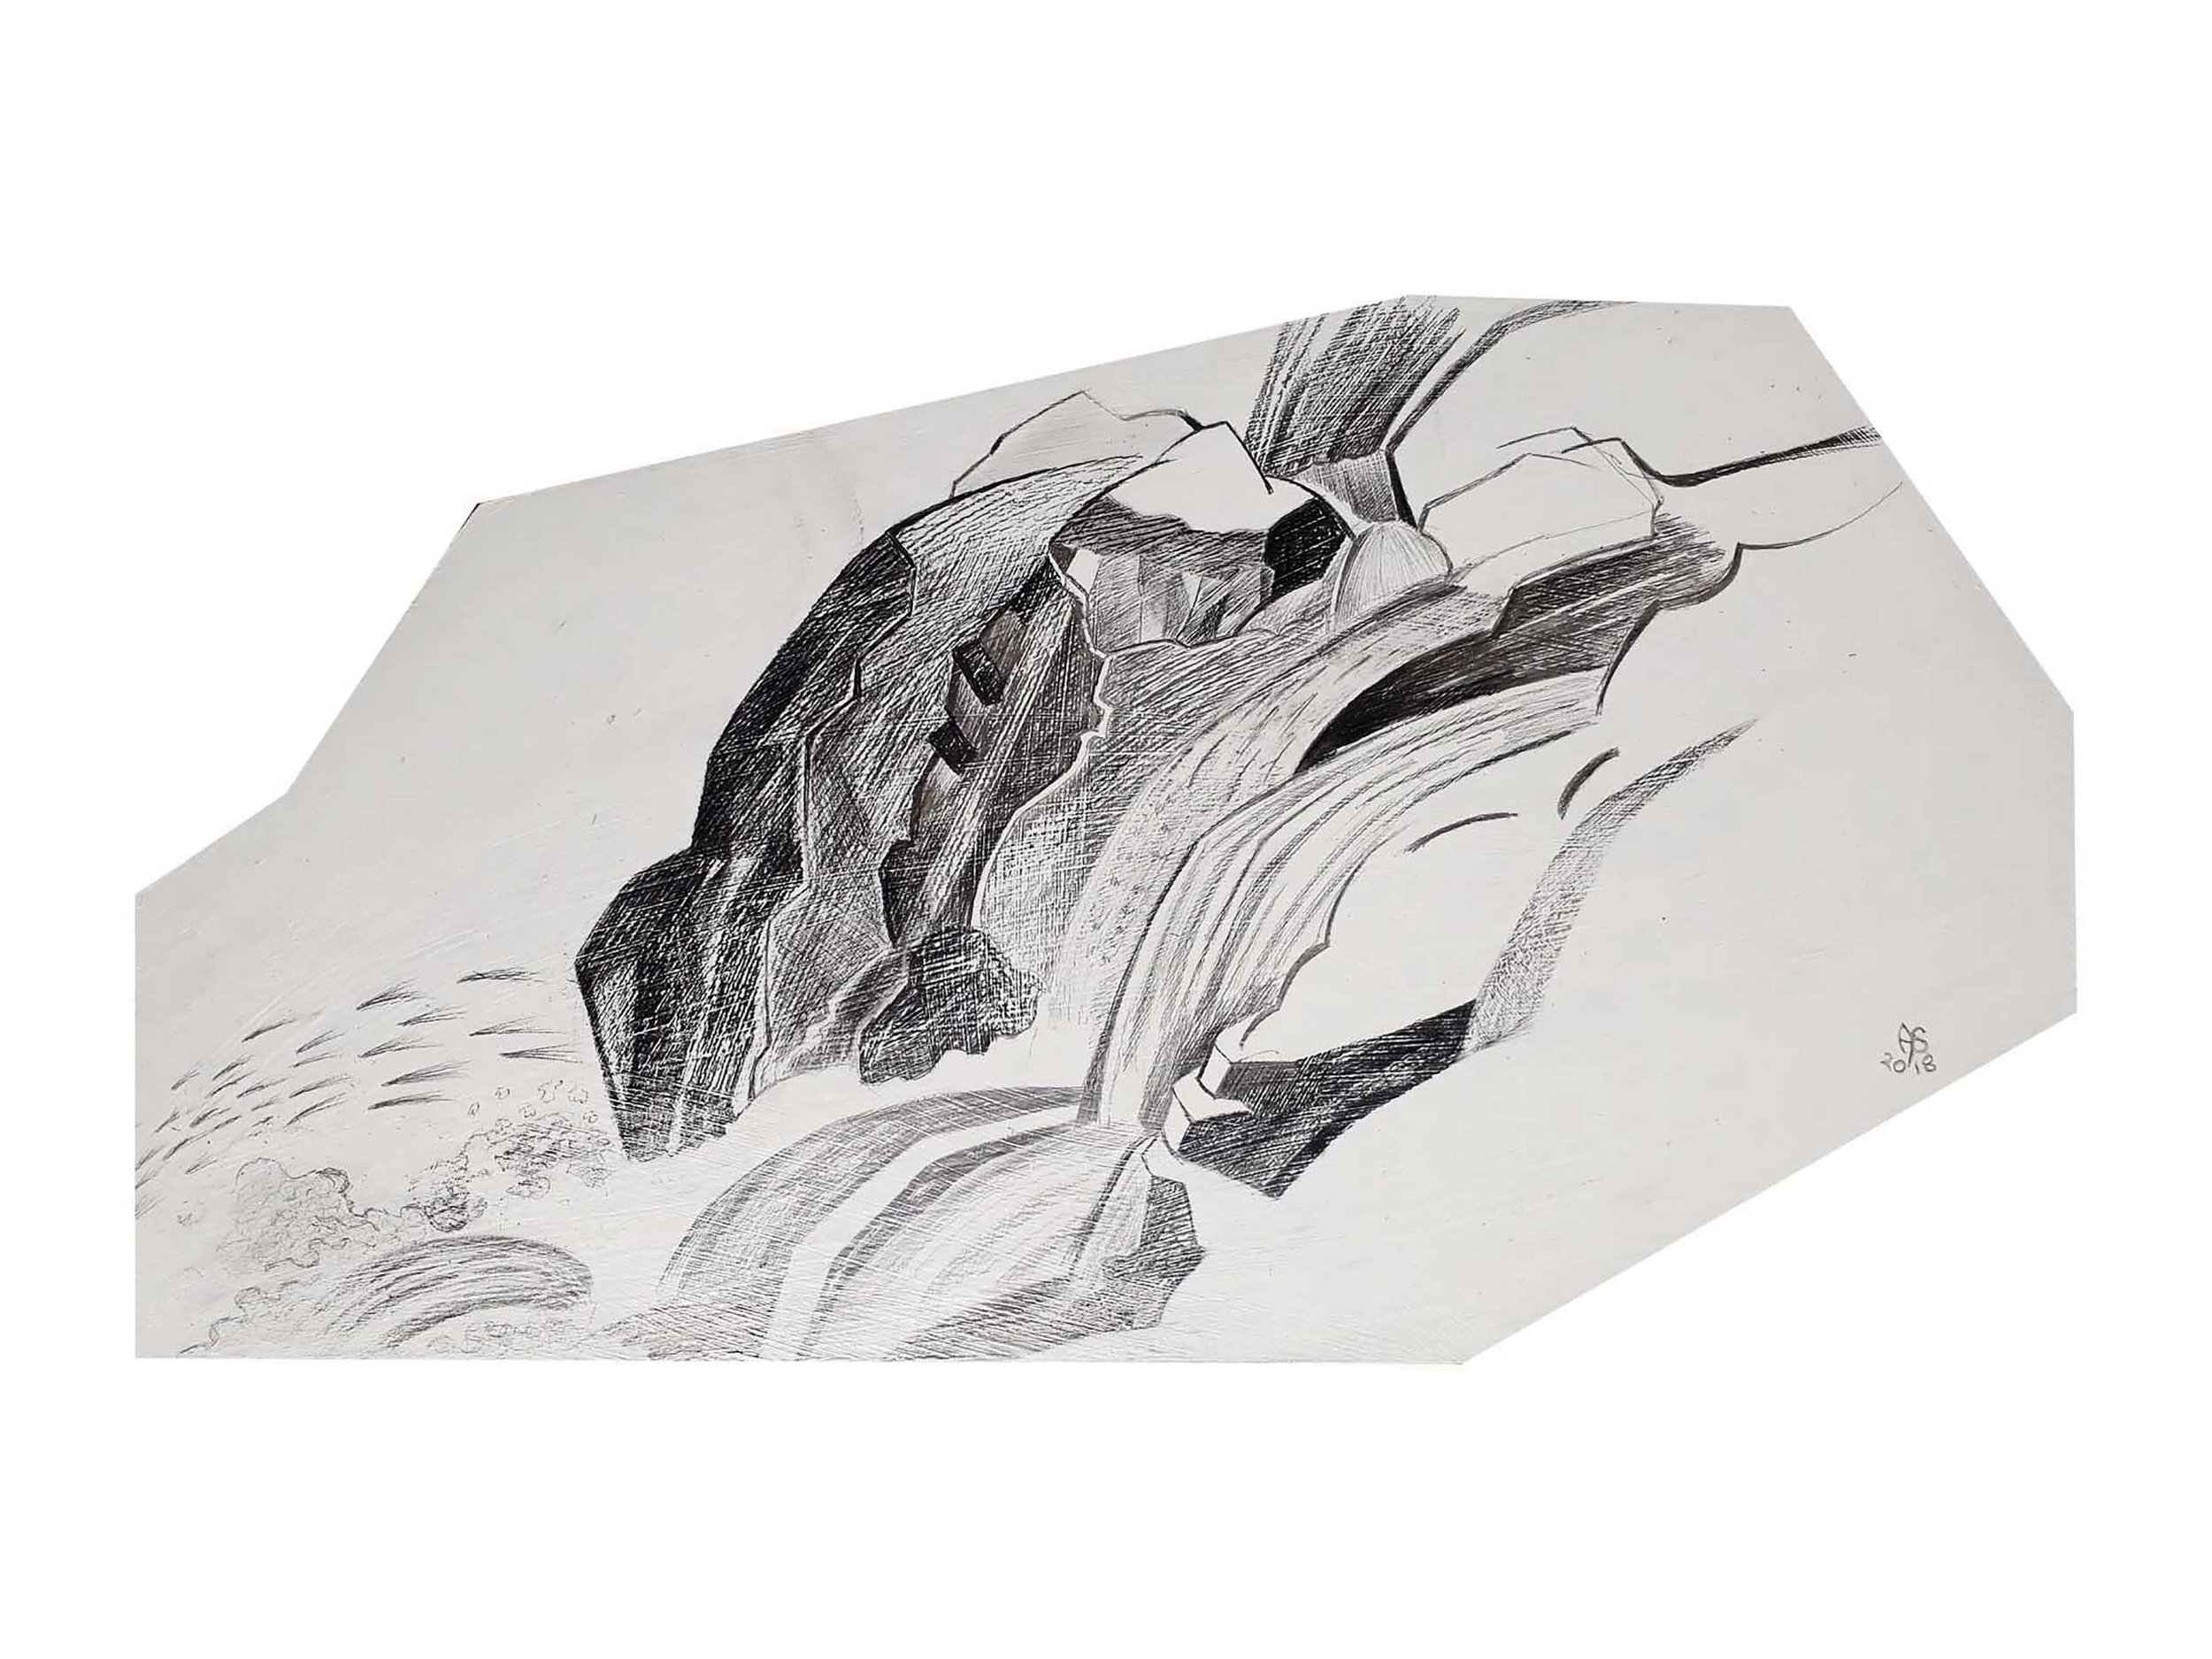 French Waterfall, 2018, Graphite on MDF, 30.5 cm x 50 cm, $125 + postage